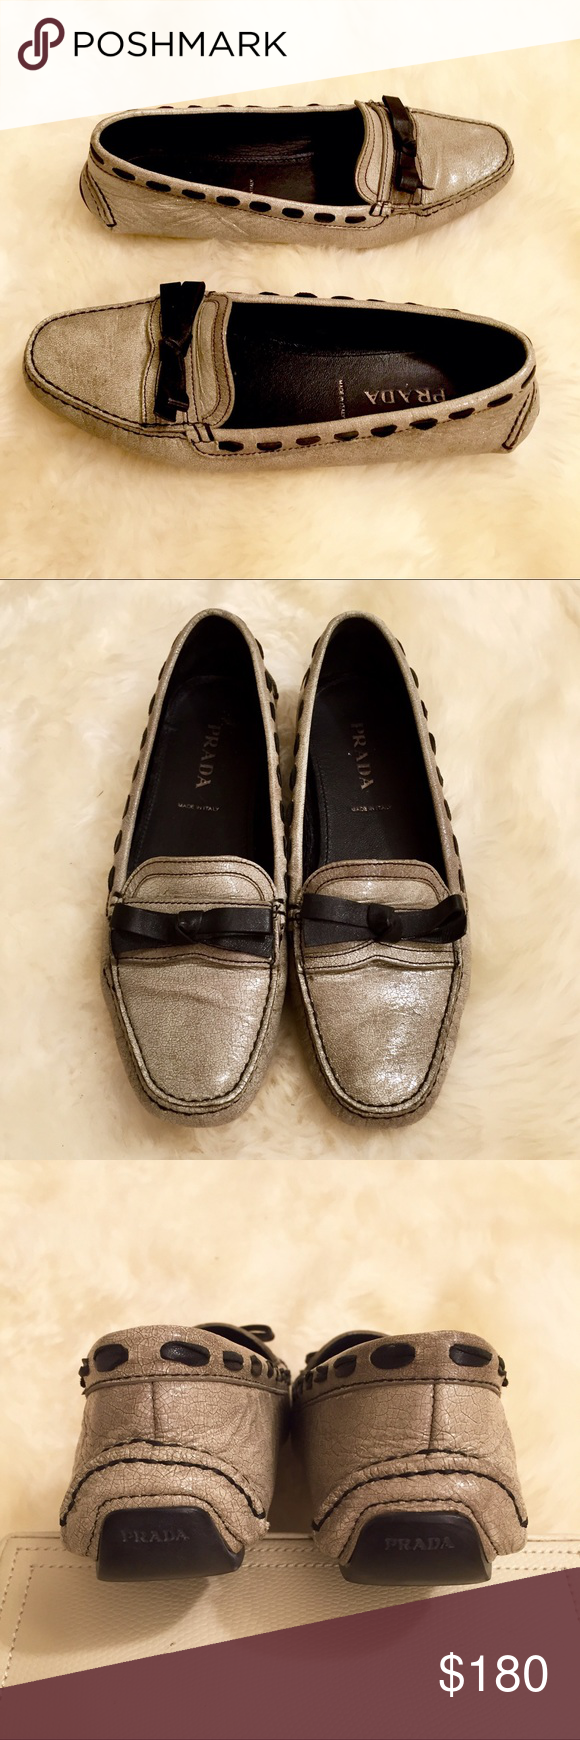 🆕Prada Leather Driving Moccasins 100% AUTHENTIC Prada light grey driving moccasins/loafers with black exposed leather stitching detail. Fits a size 7.5-8 and in FANTASTIC condition! Originally retailed for $650 ✨WILL SELL FOR LESS ON ♏️!!  💥ALL ITEMS ARE DESCRIBED AS ACCURATELY AS POSSIBLE & ALL SALES ARE FINAL. PLEASE ASK ALL QUESTIONS PRIOR TO PURCHASE, I WILL NOT BE HELD RESPONSIBLE FOR LOST OR DAMAGED PARCELS OR BUYERS DISSATISFACTION💥 Prada Shoes Flats & Loafers